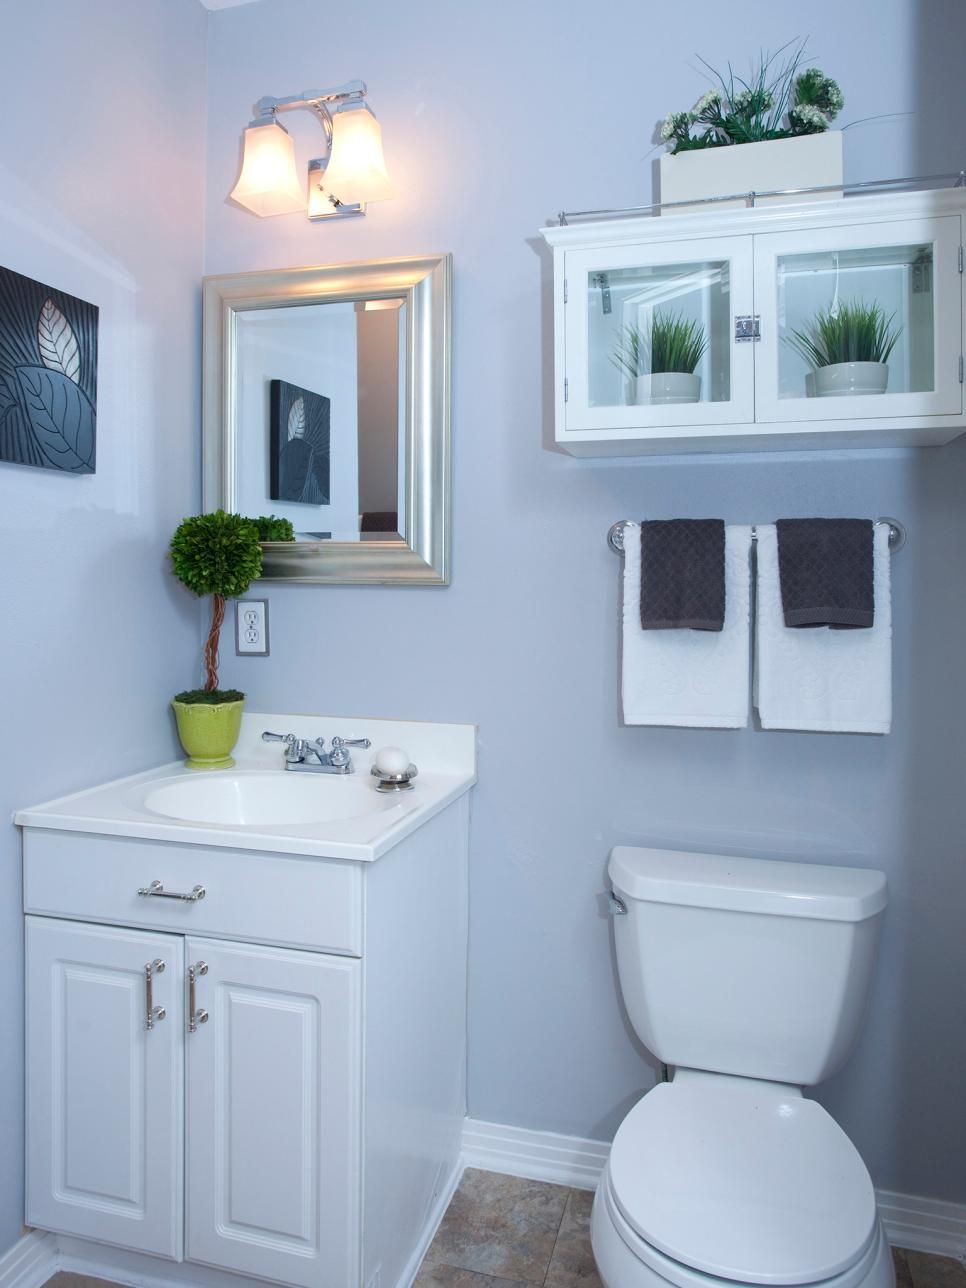 20 Small Bathroom Before And Afters Small Bathroom Redo Small Bathroom Makeover Budget Bathroom Remodel